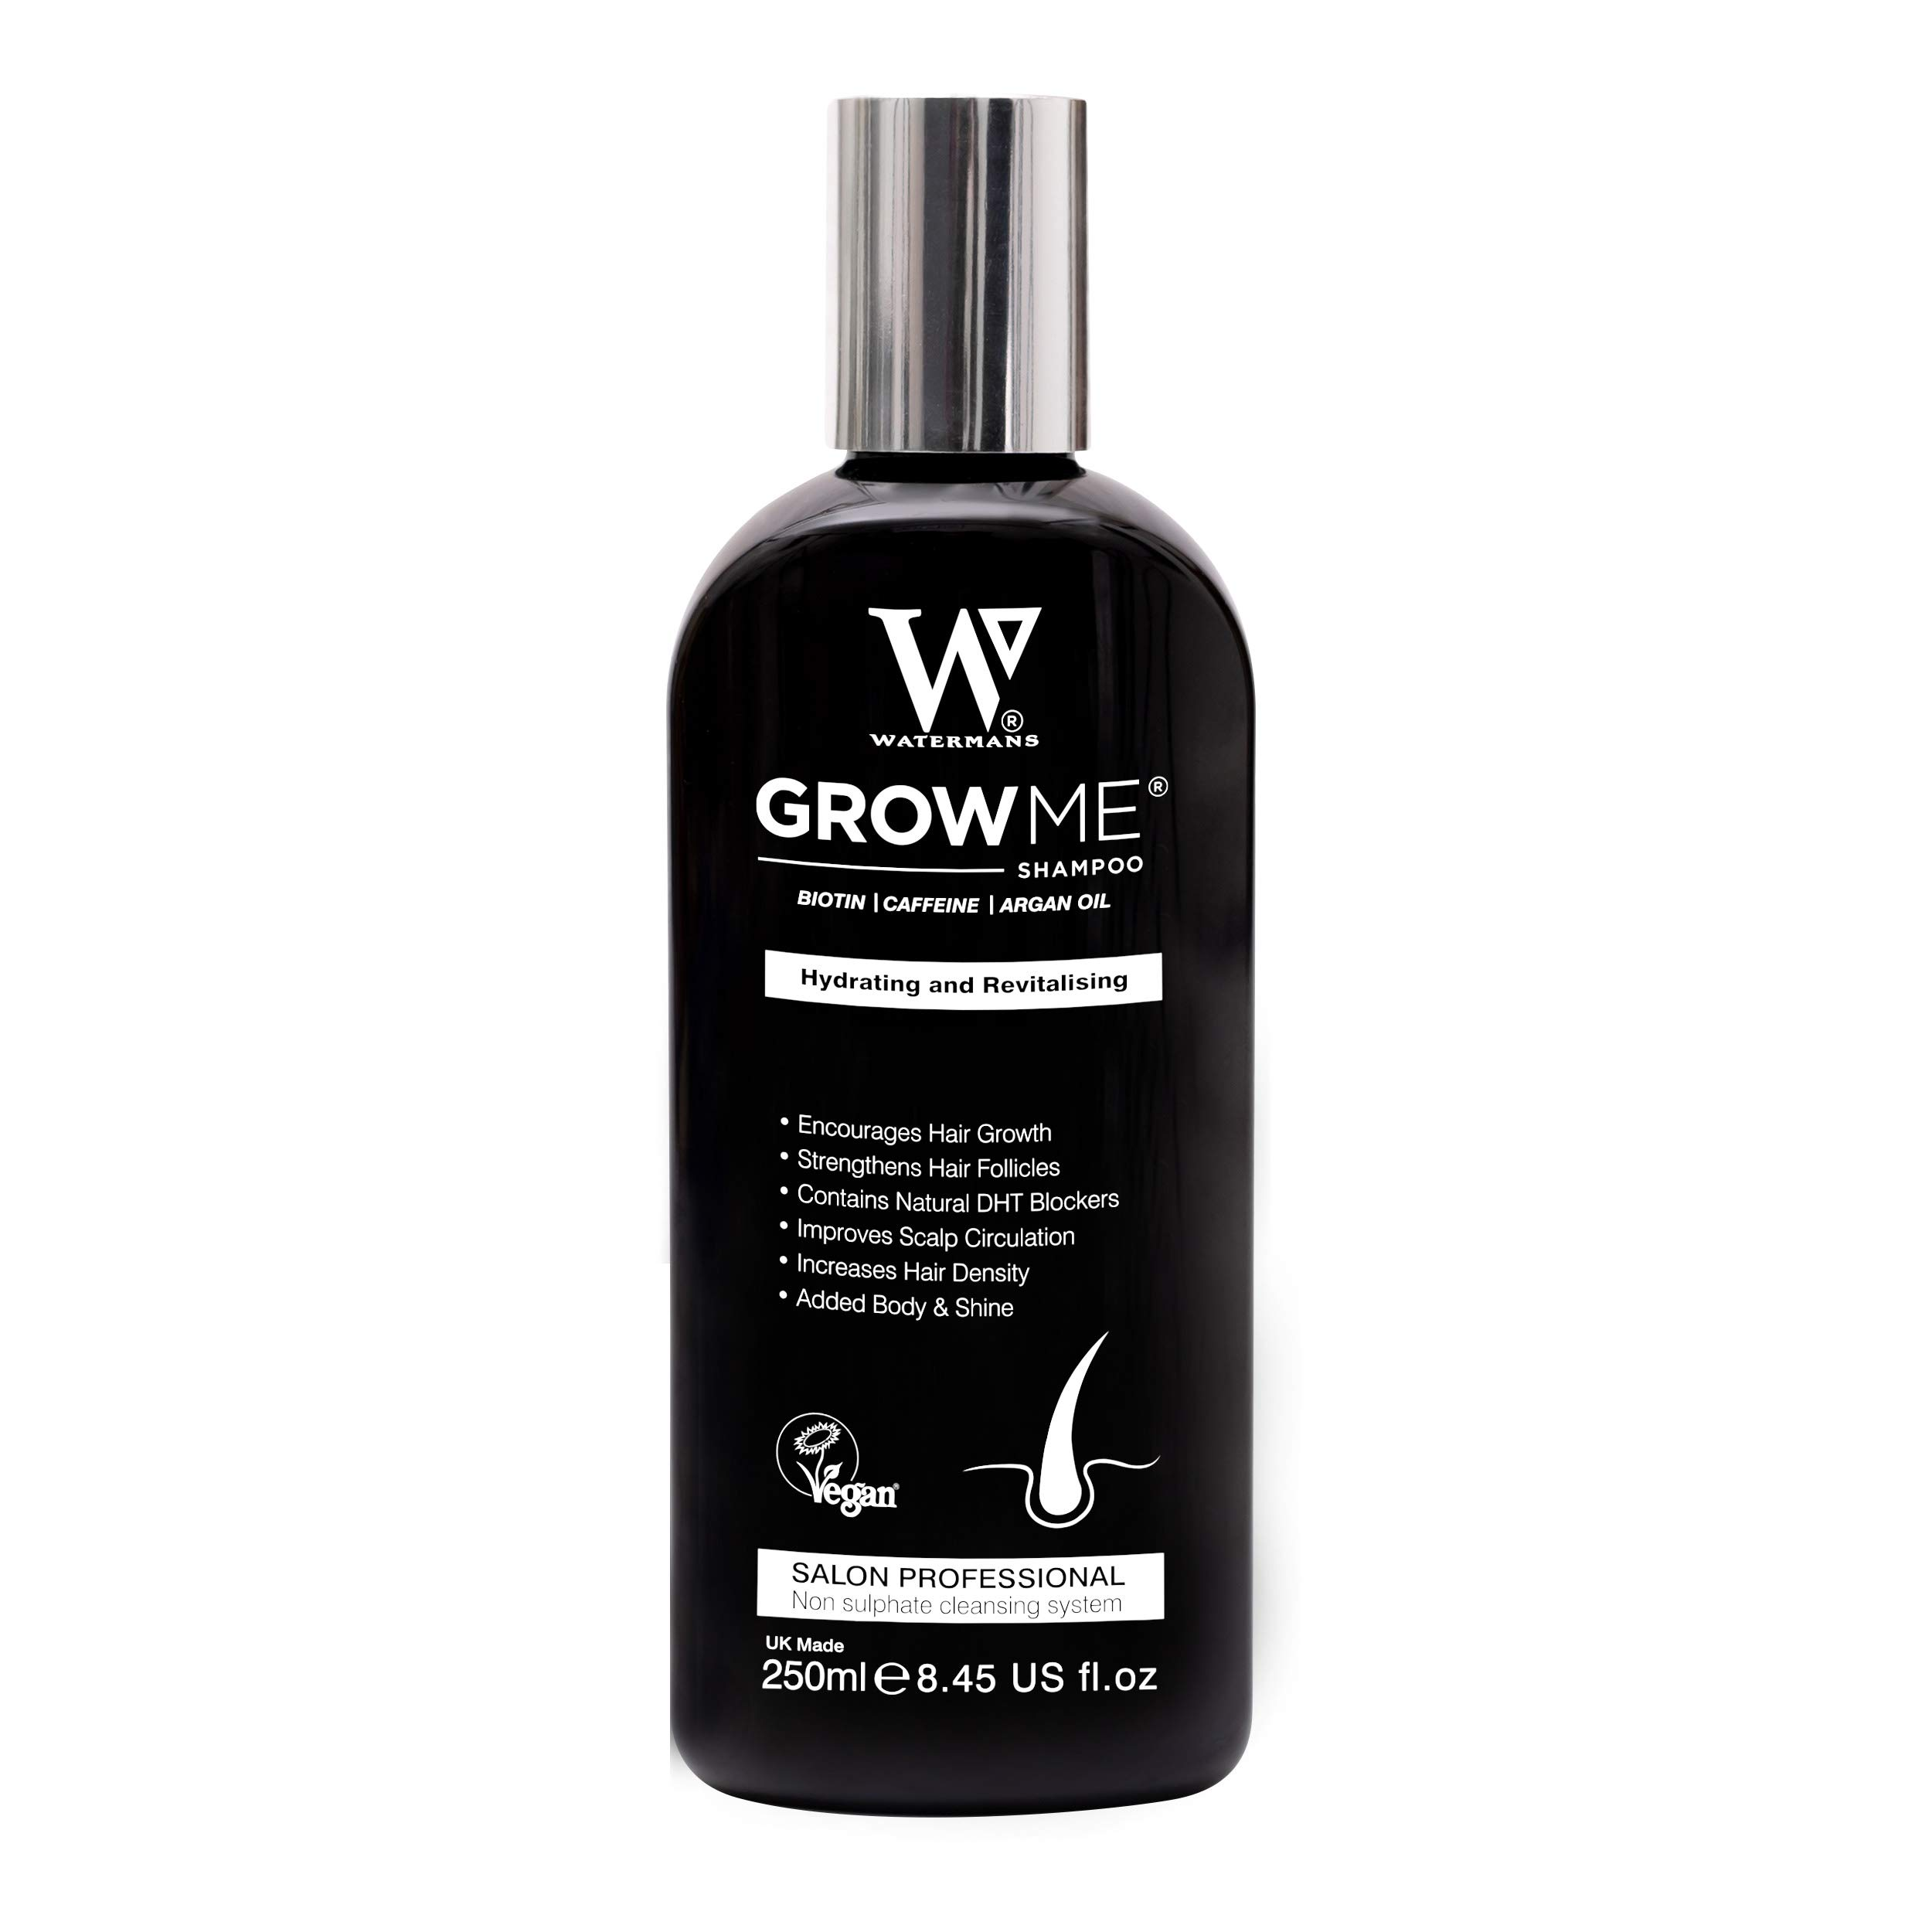 Watermans Grow Me Hair Growth Shampoo, UK Made - Sulphate Free, Vegan, Caffeine, Biotin, Argan Oil, Allantoin, Rosemary. Helps with hair growth, hair loss problems, Increase the look of hair density for Women and Men all races.